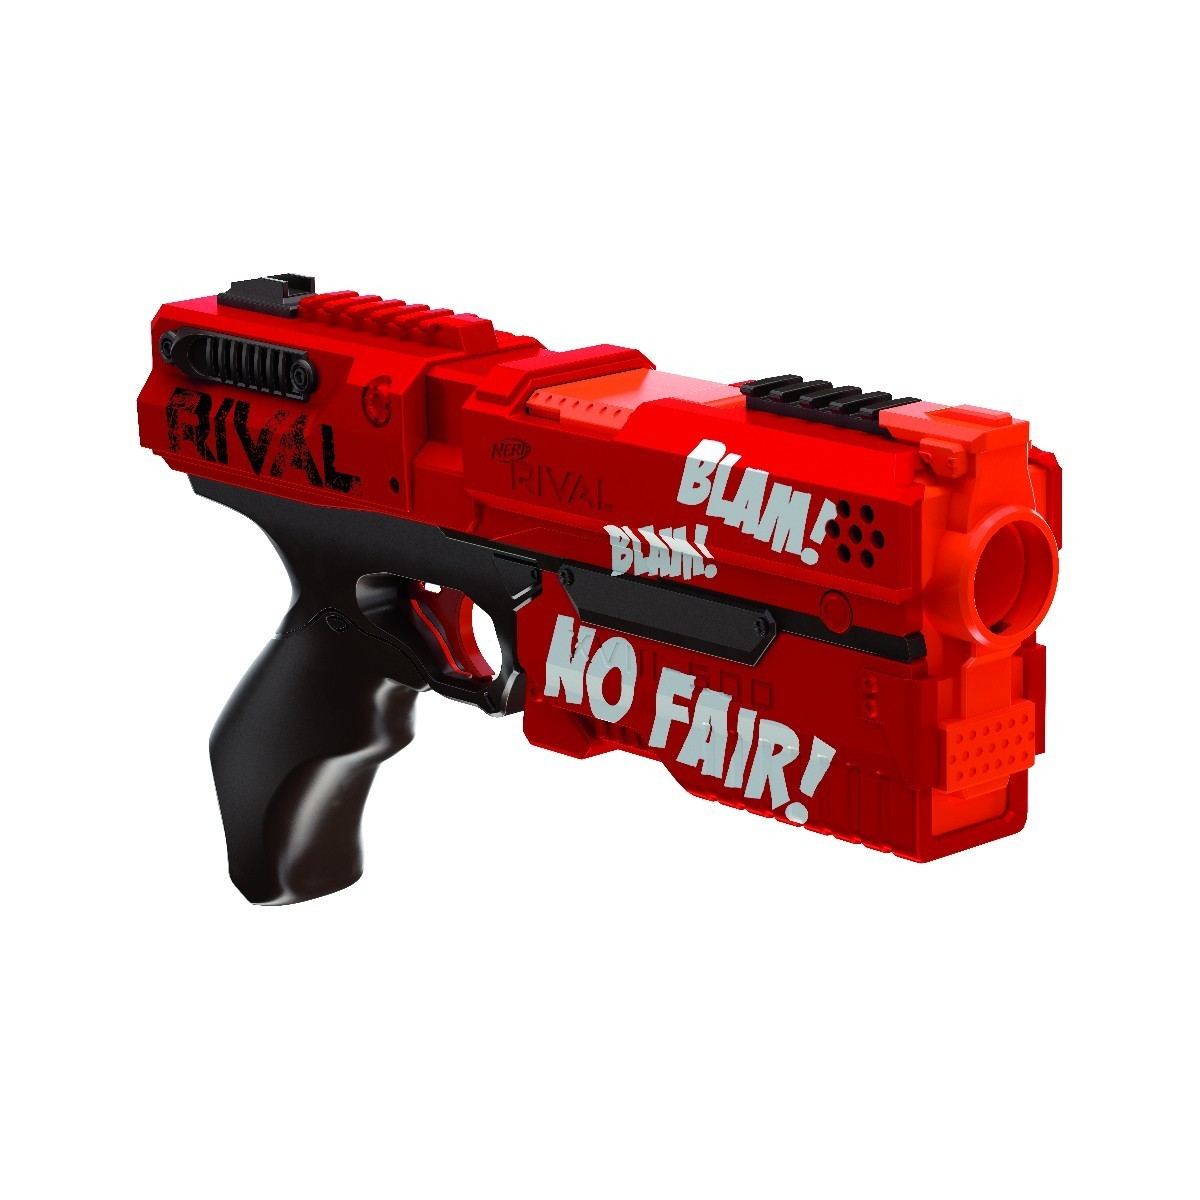 The Deadpool-themed Nerf gun is perhaps the most intense-looking Nerf gun  ever